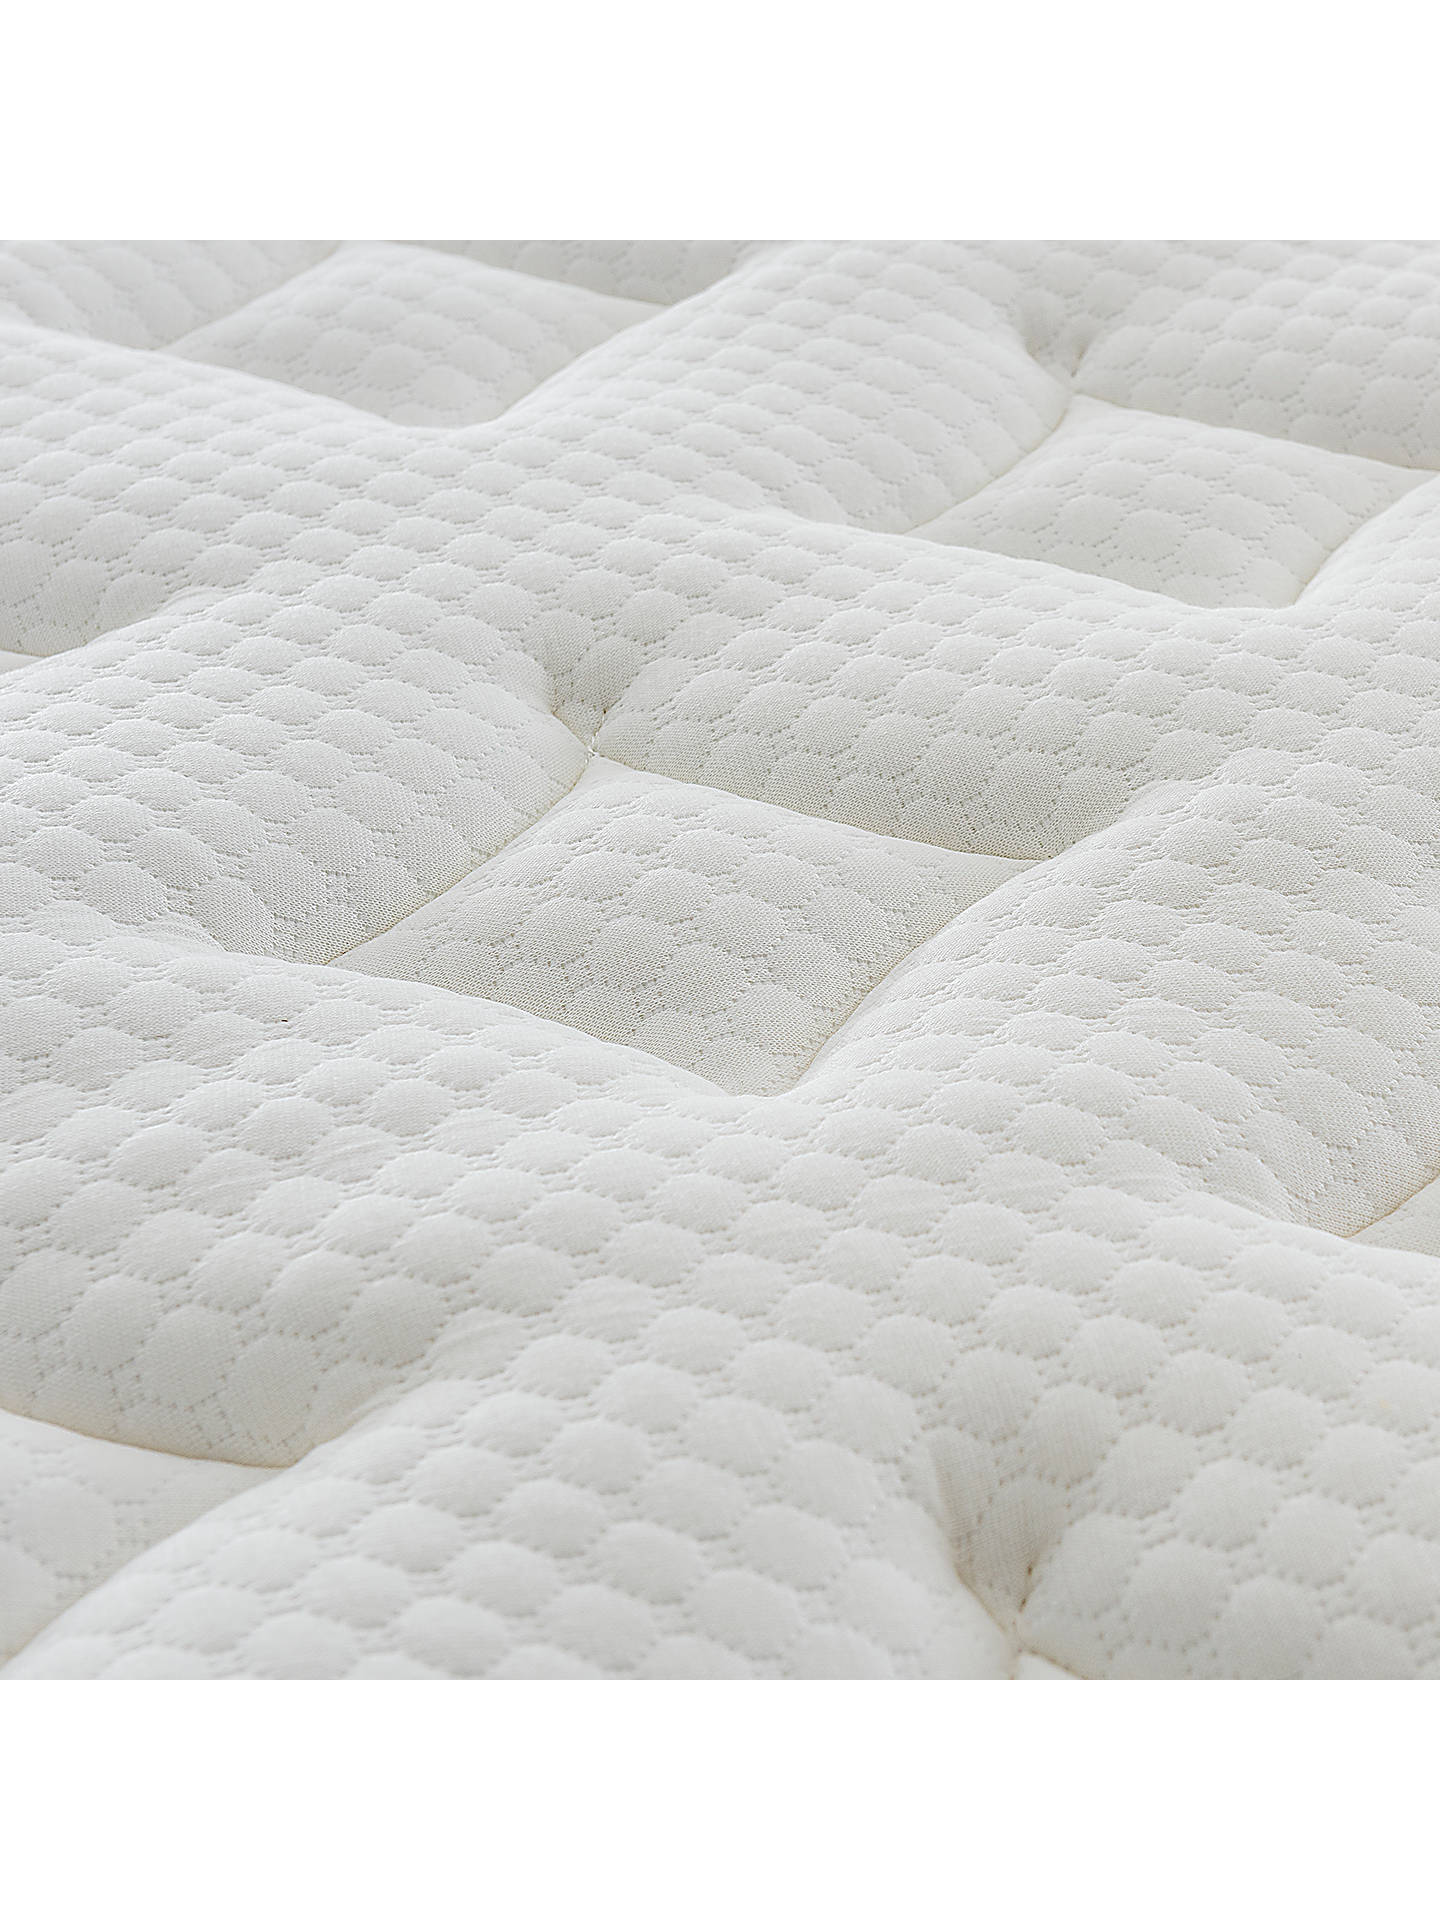 BuySilentnight Sleep Genius 2800 Pocket Latex Mattress, Medium Tension, Single Online at johnlewis.com